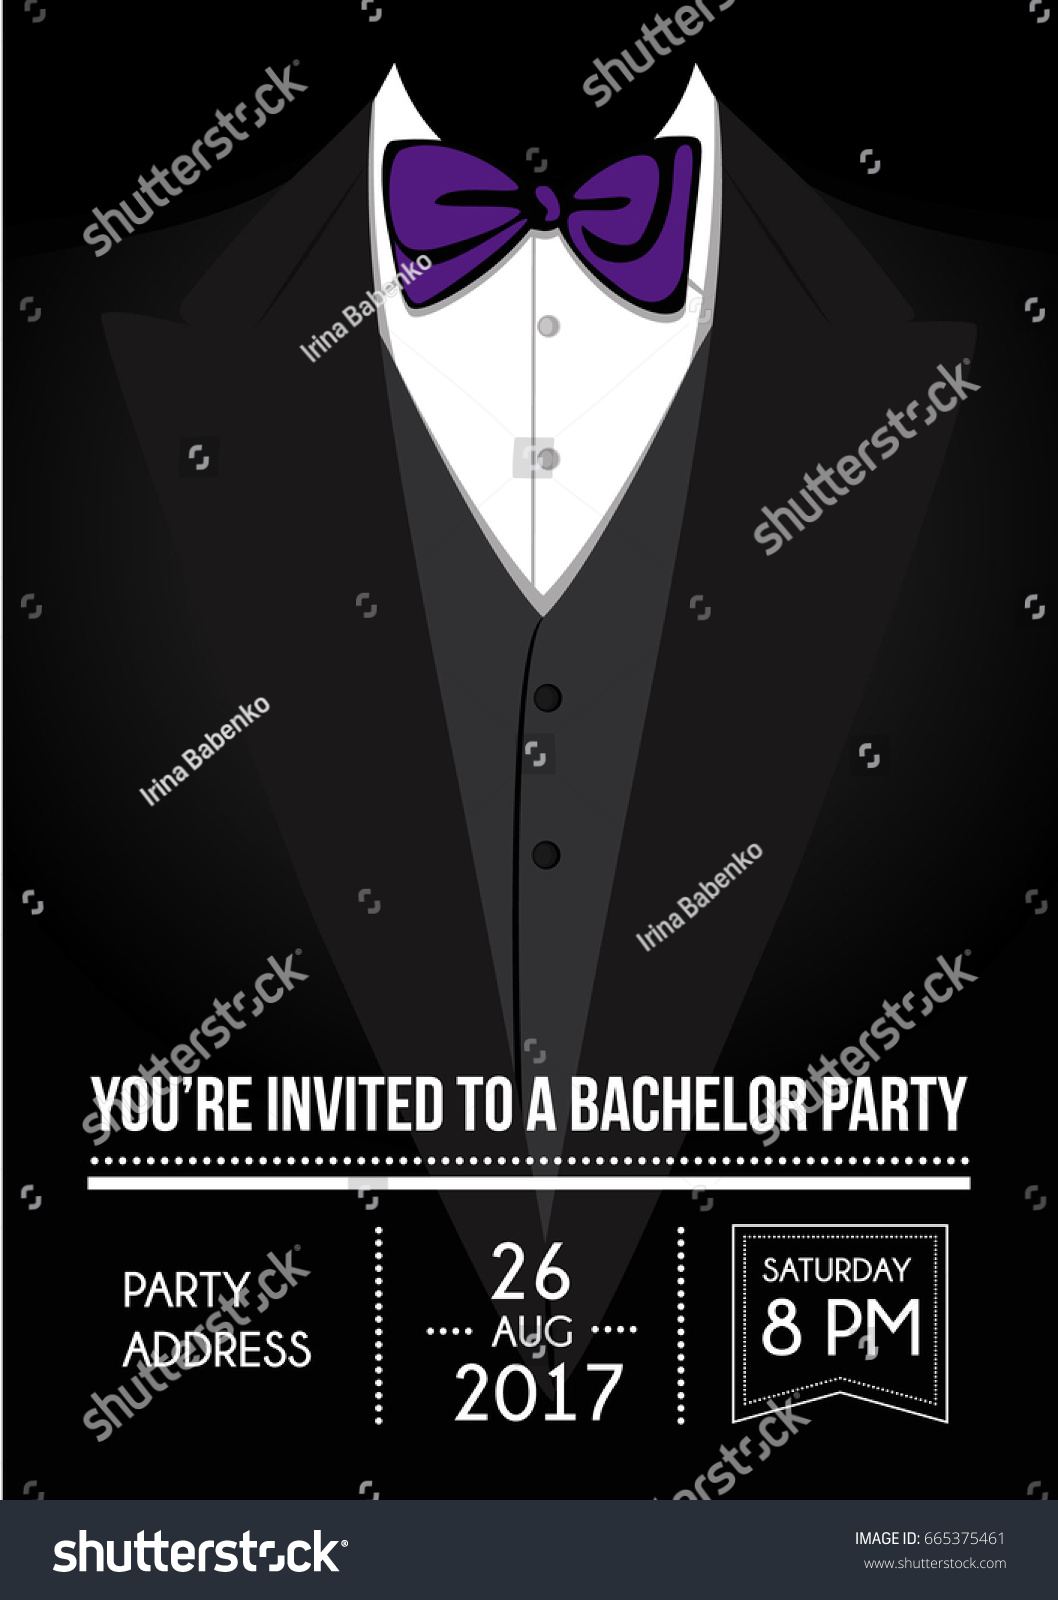 Bachelor party invitation card stock vector 665375461 shutterstock bachelor party invitation card monicamarmolfo Choice Image